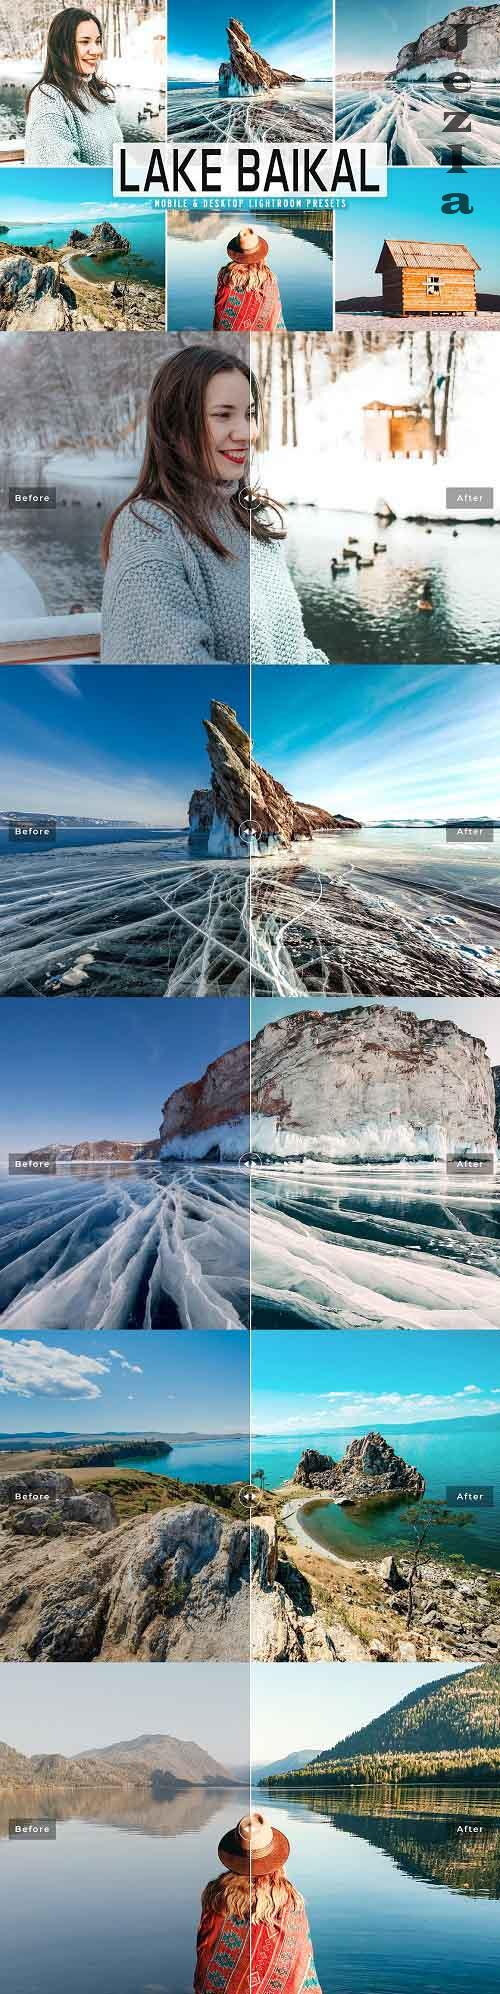 Lake Baikal Pro Lightroom Presets - 5554367 - Mobile & Desktop